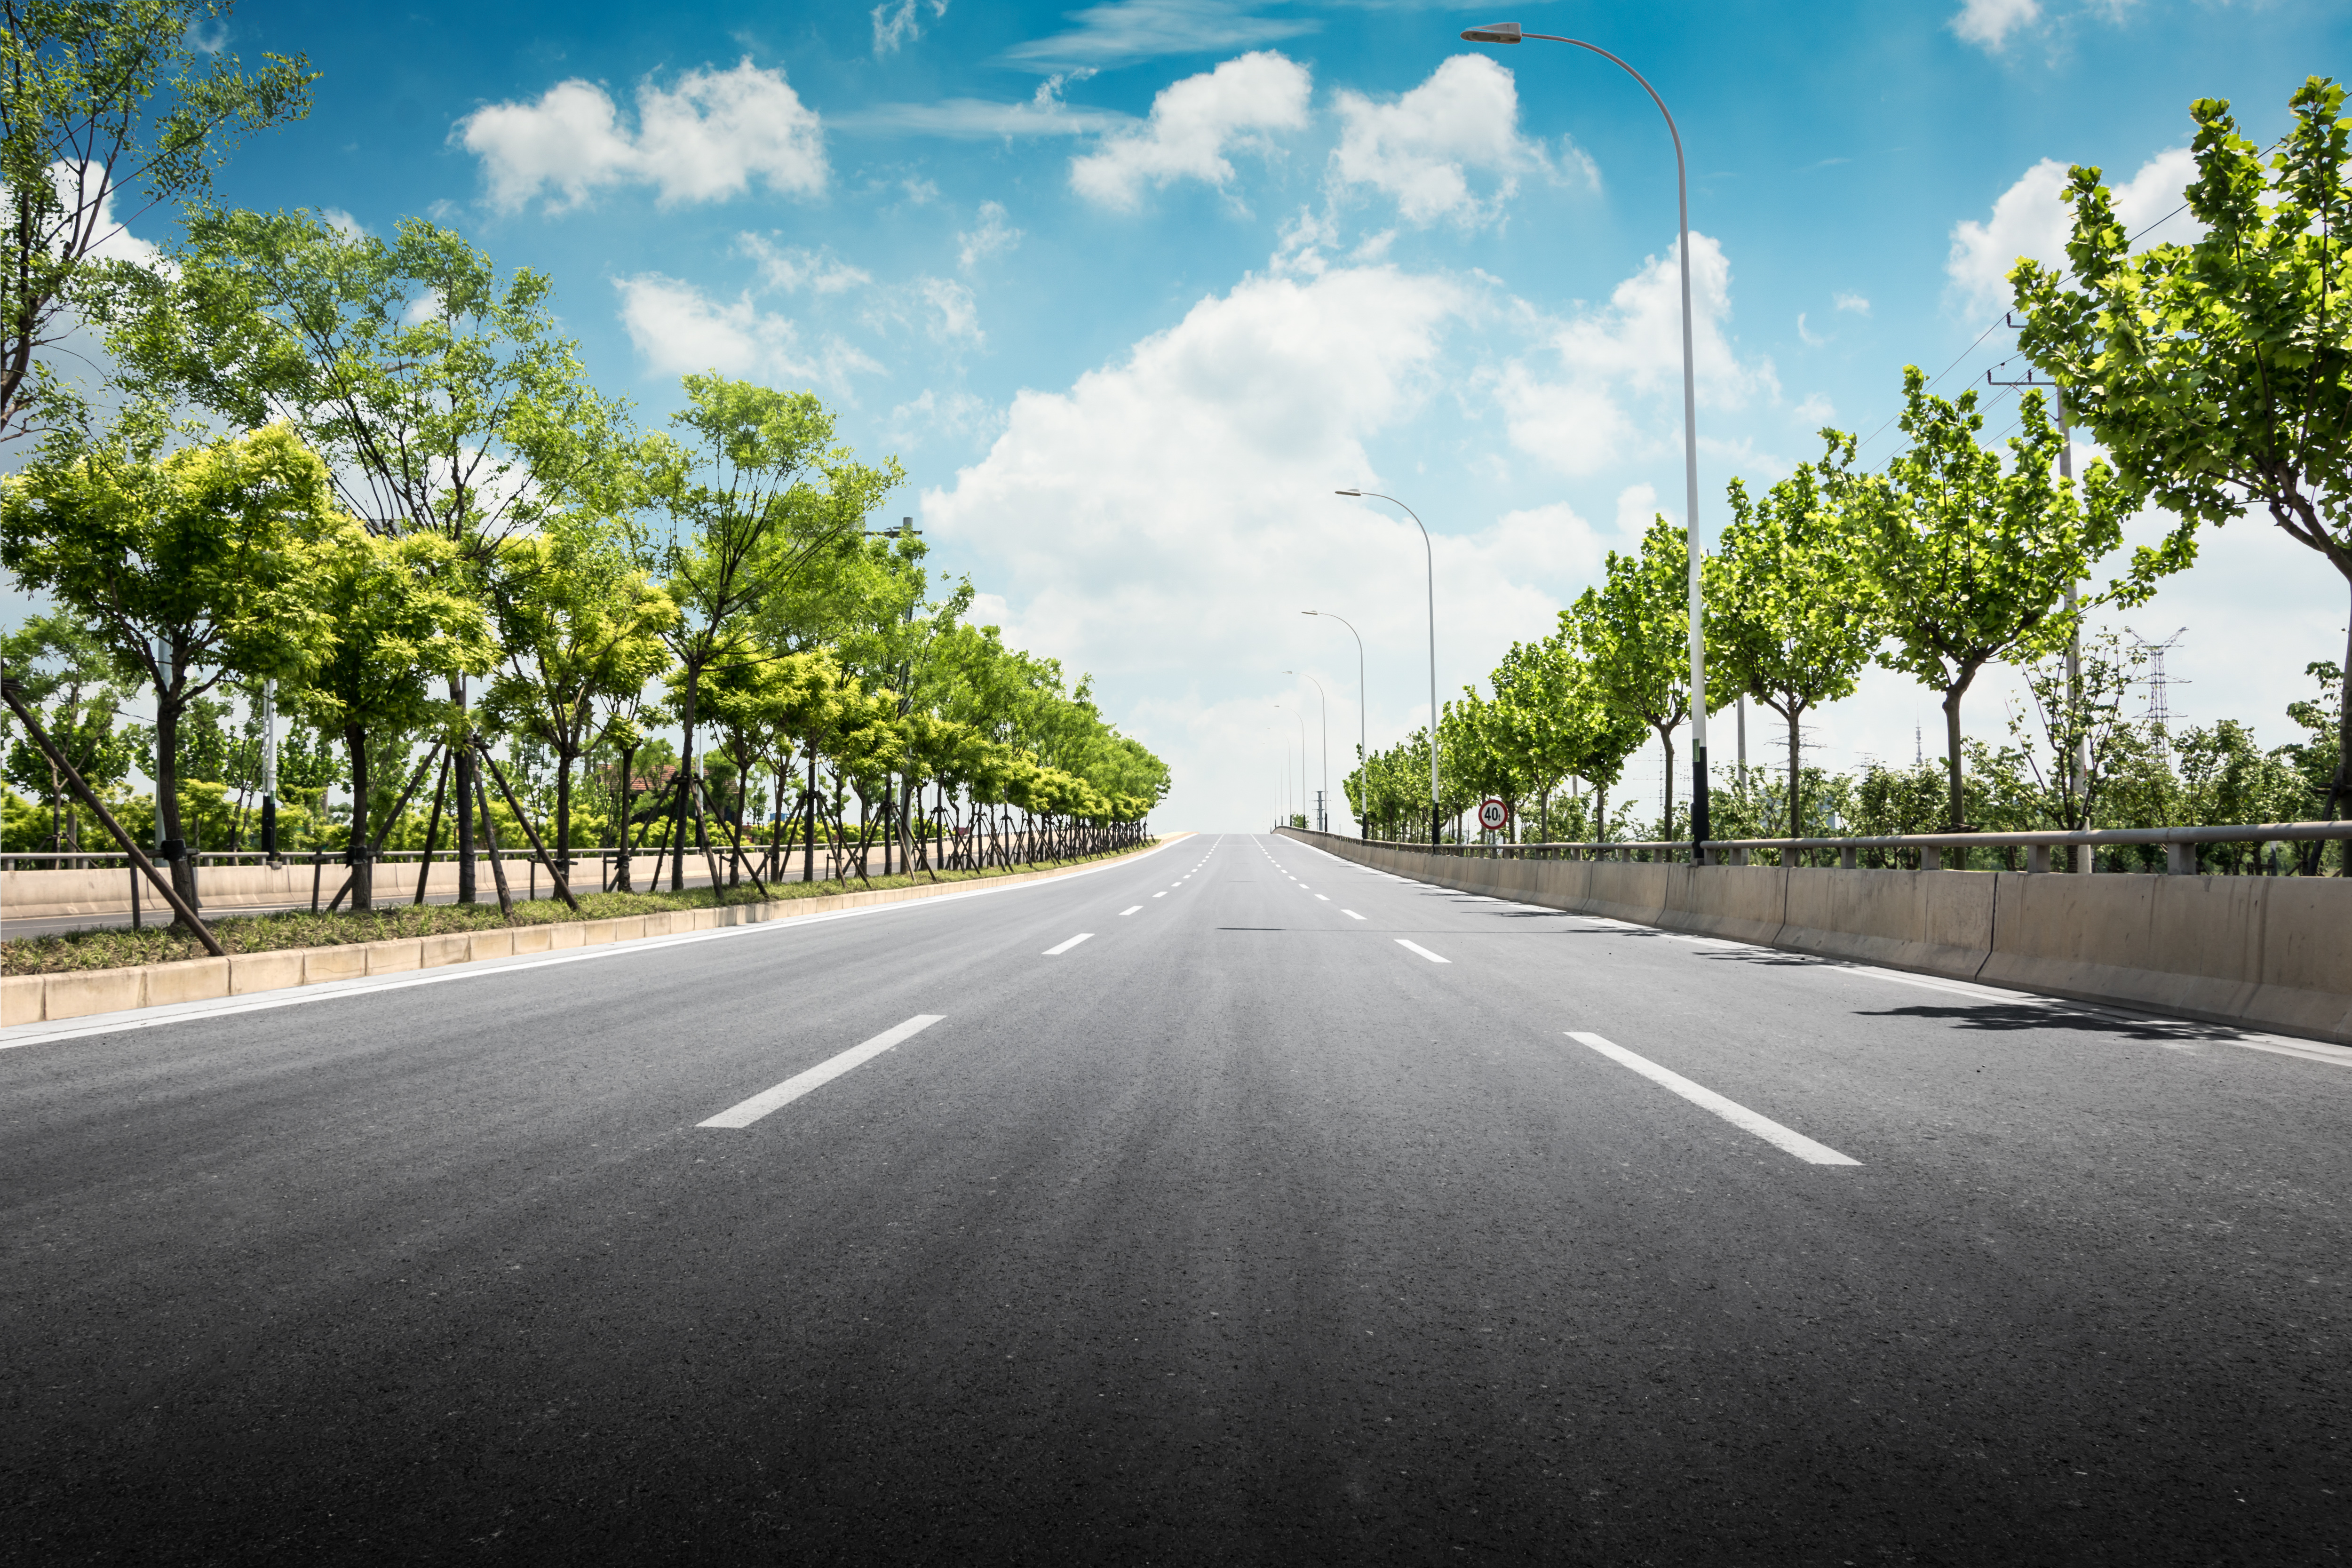 ti02 in road pavements reduces nox